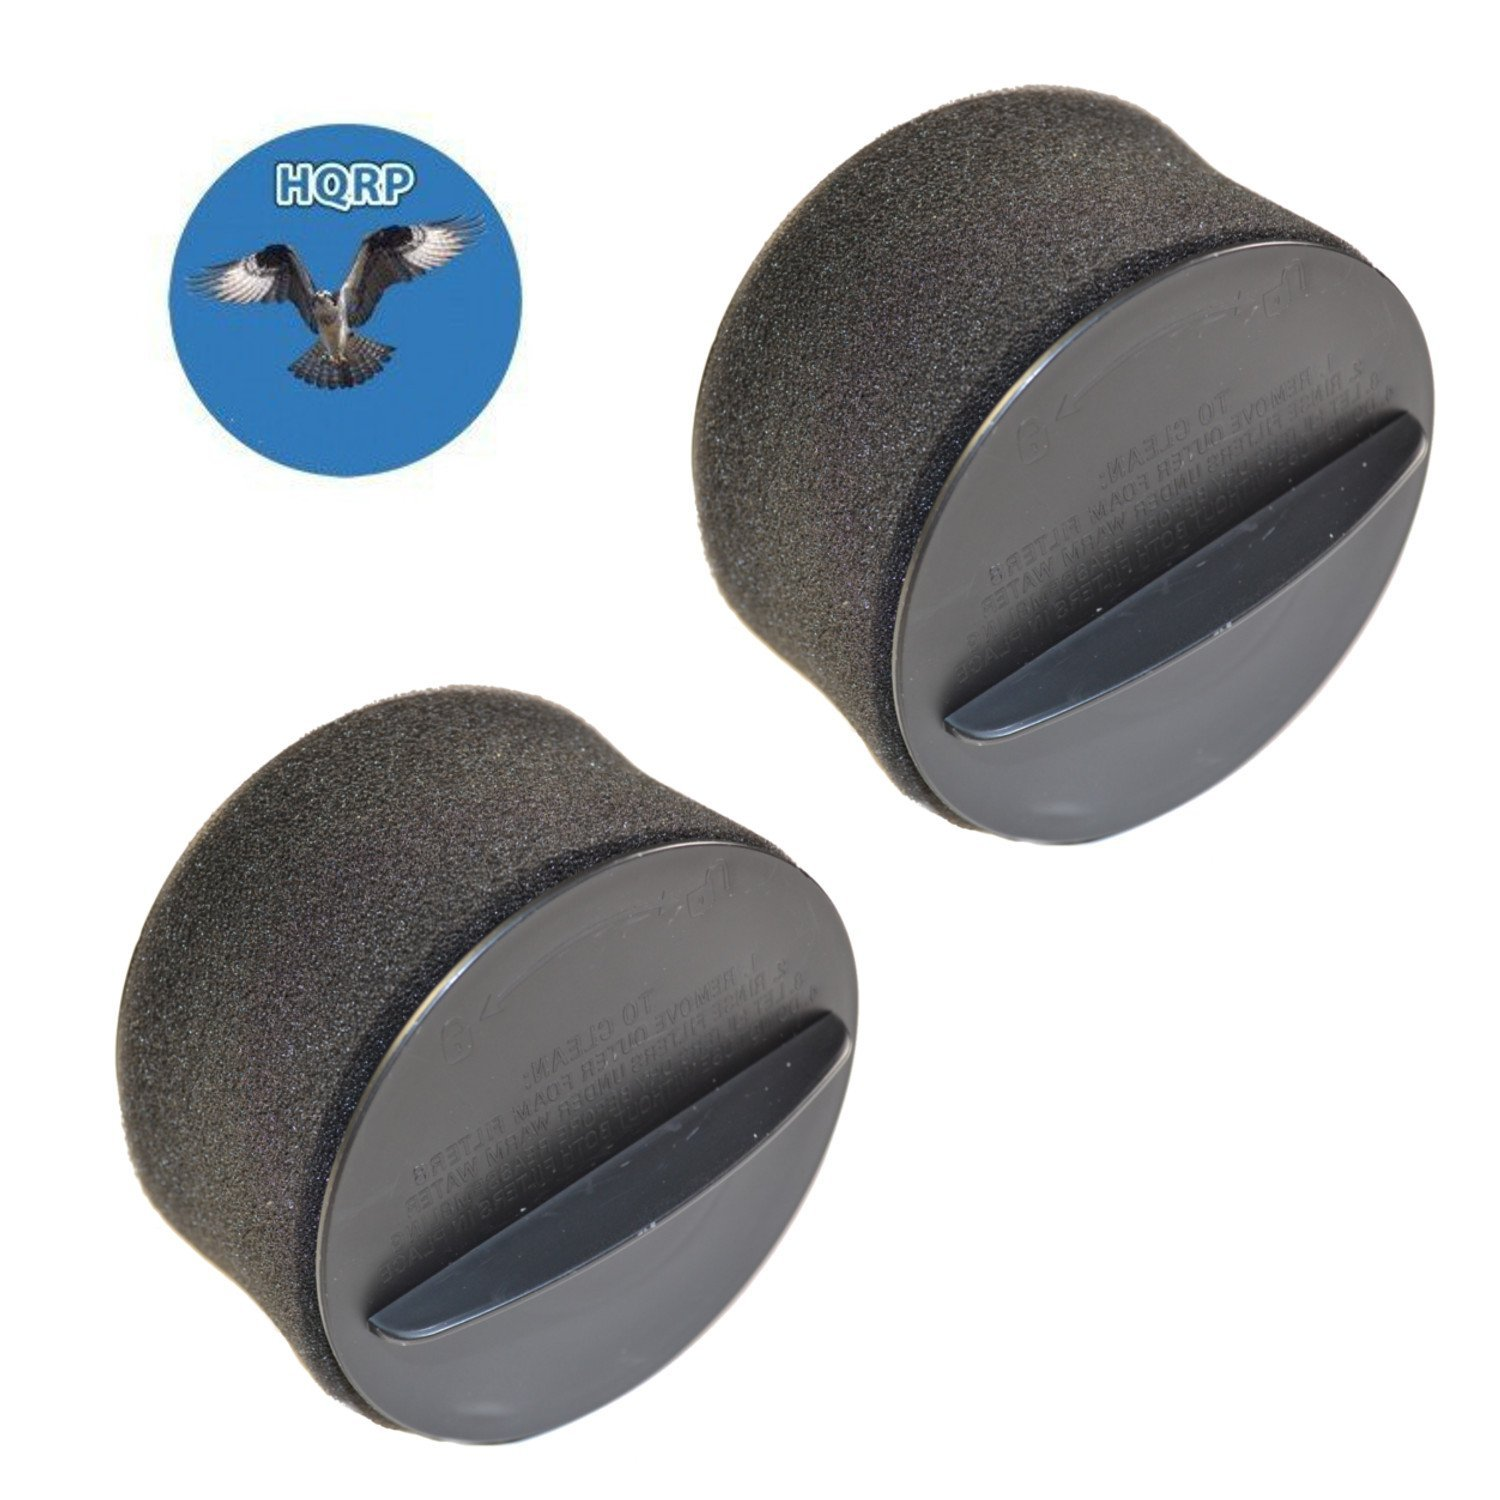 HQRP 2-pack Inner & Outer Circular Filter Set for Bissell 98N4, 948N41, 98N41, 98N4W PowerForce Helix Upright Vacuum + HQRP Coaster